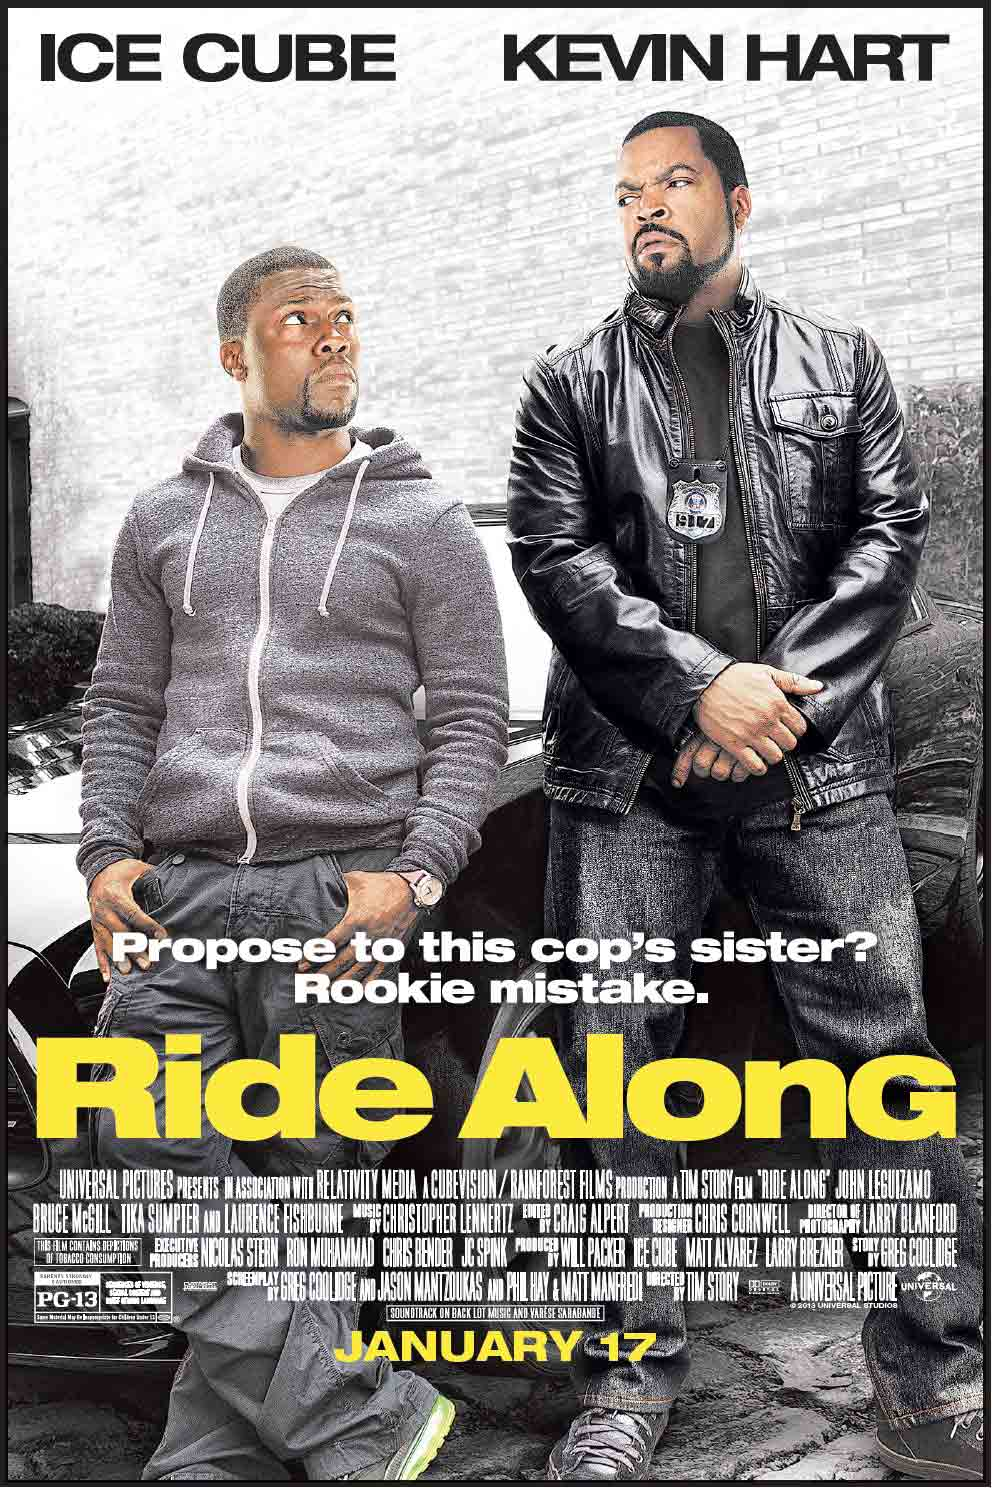 ride-along-ice-cube-kevin-hart-thatgrapejuice